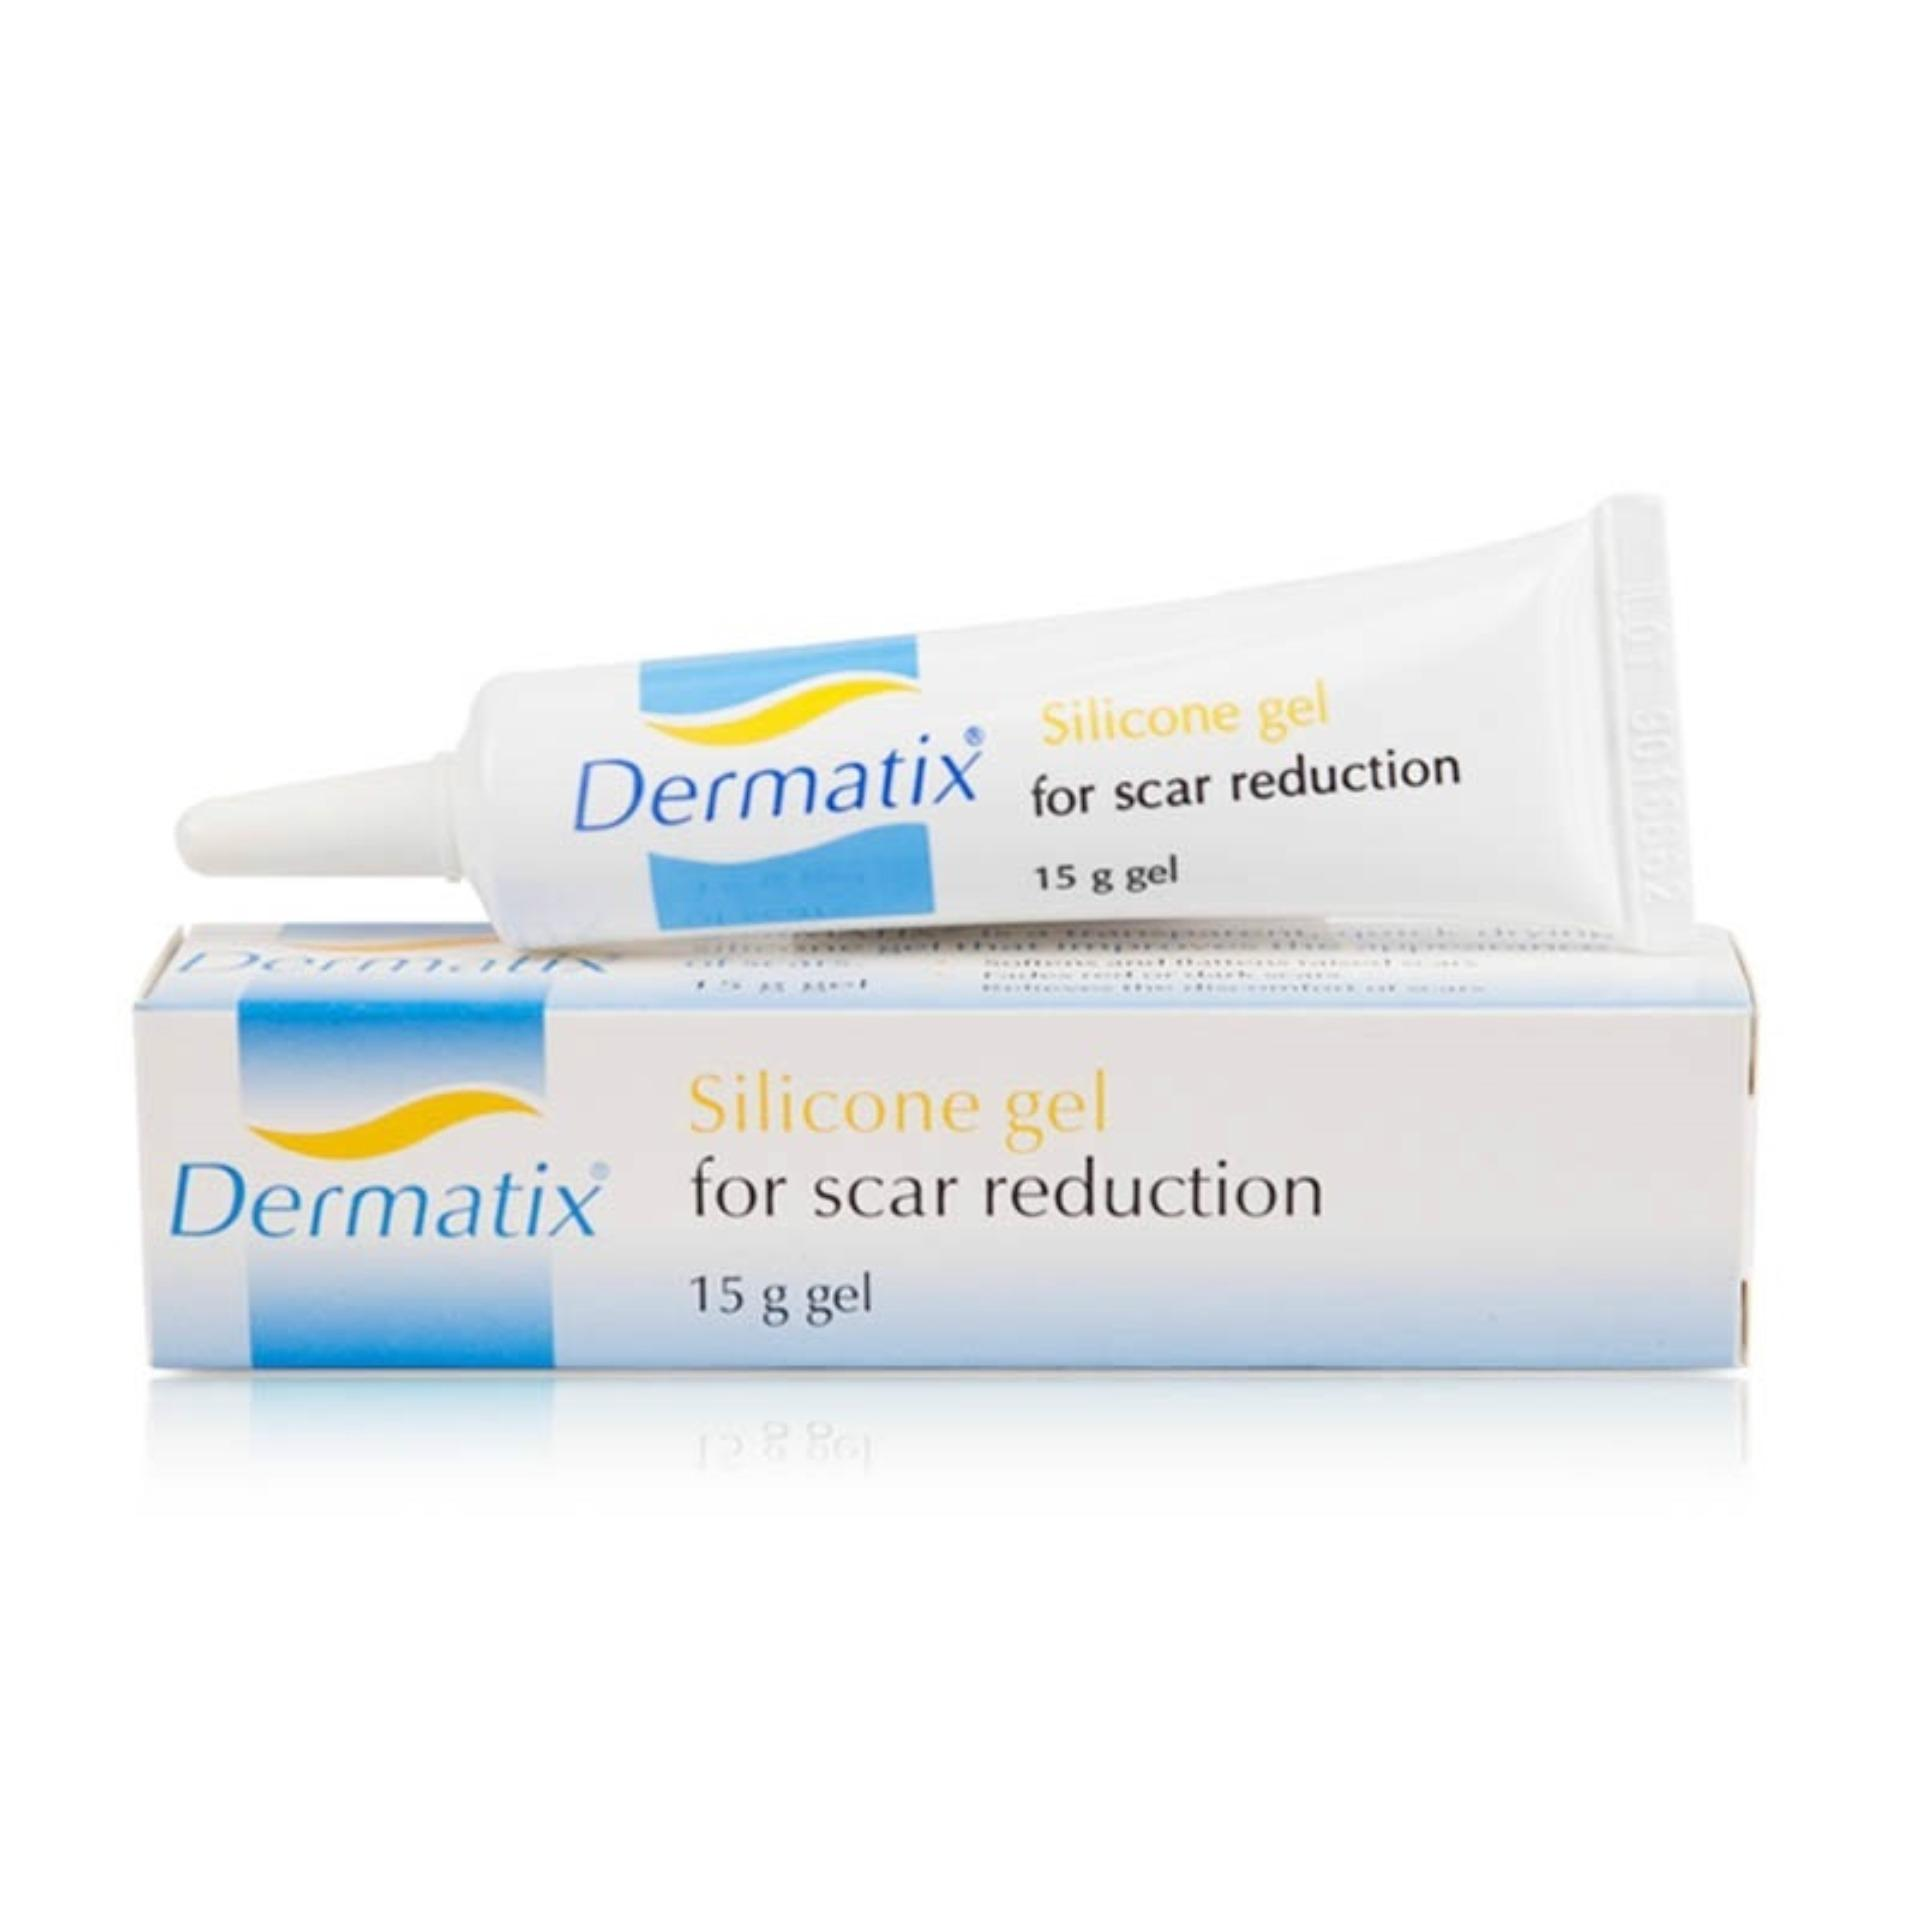 Dermatix Silicone Gel For Scar Reduction 15G Cheap